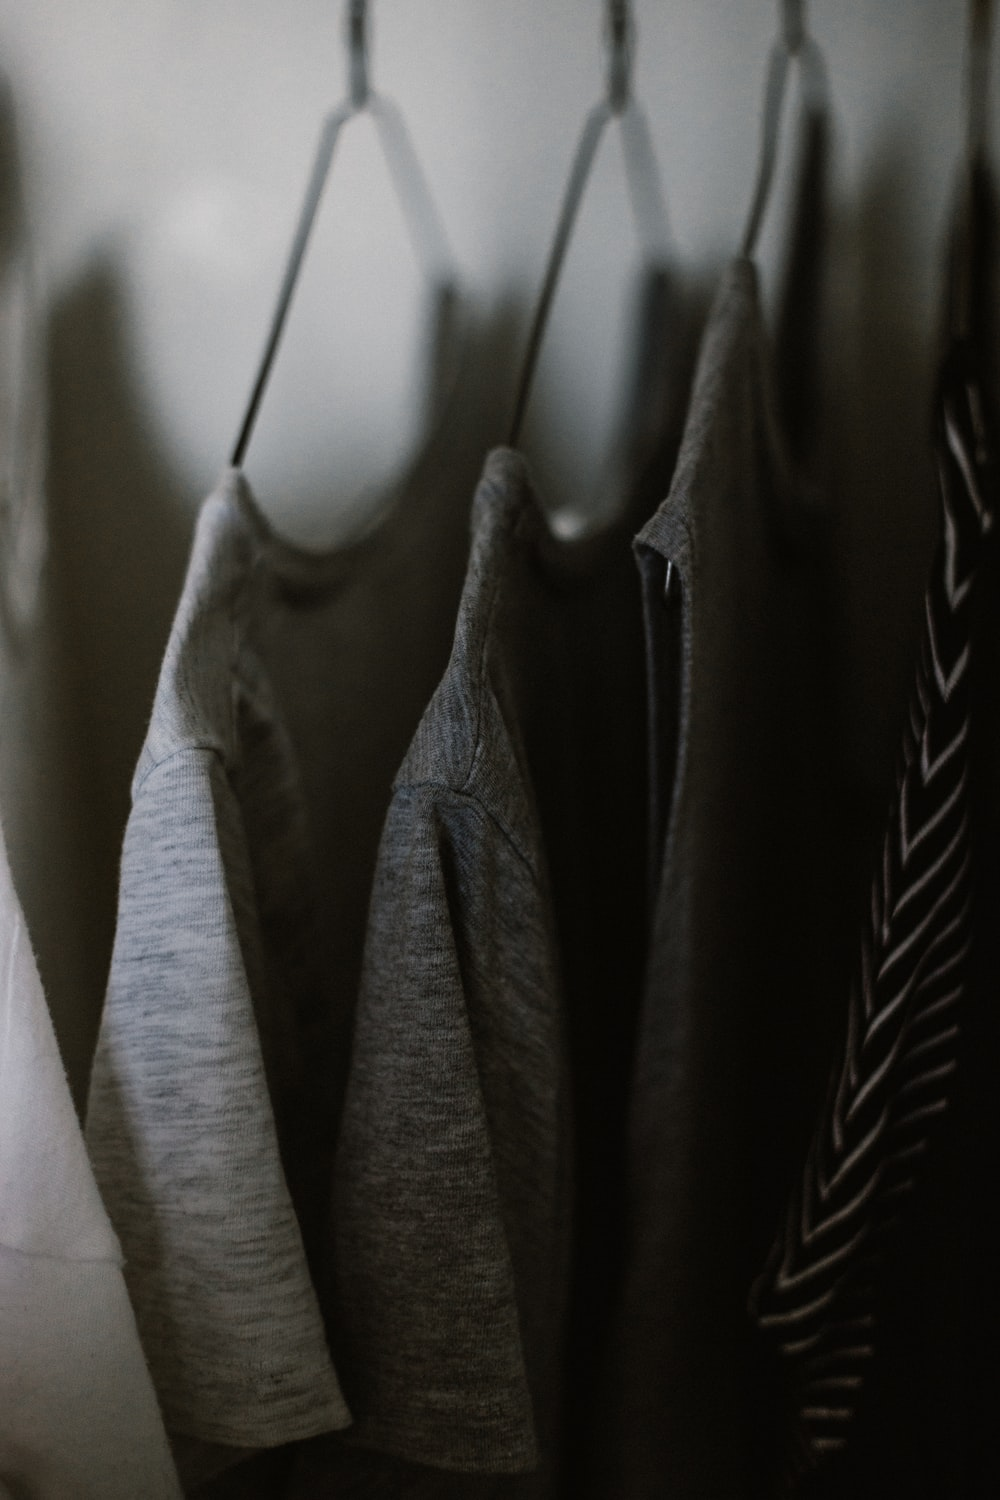 台北團體服製作  selective focus photography of hanged three gray tee shirts